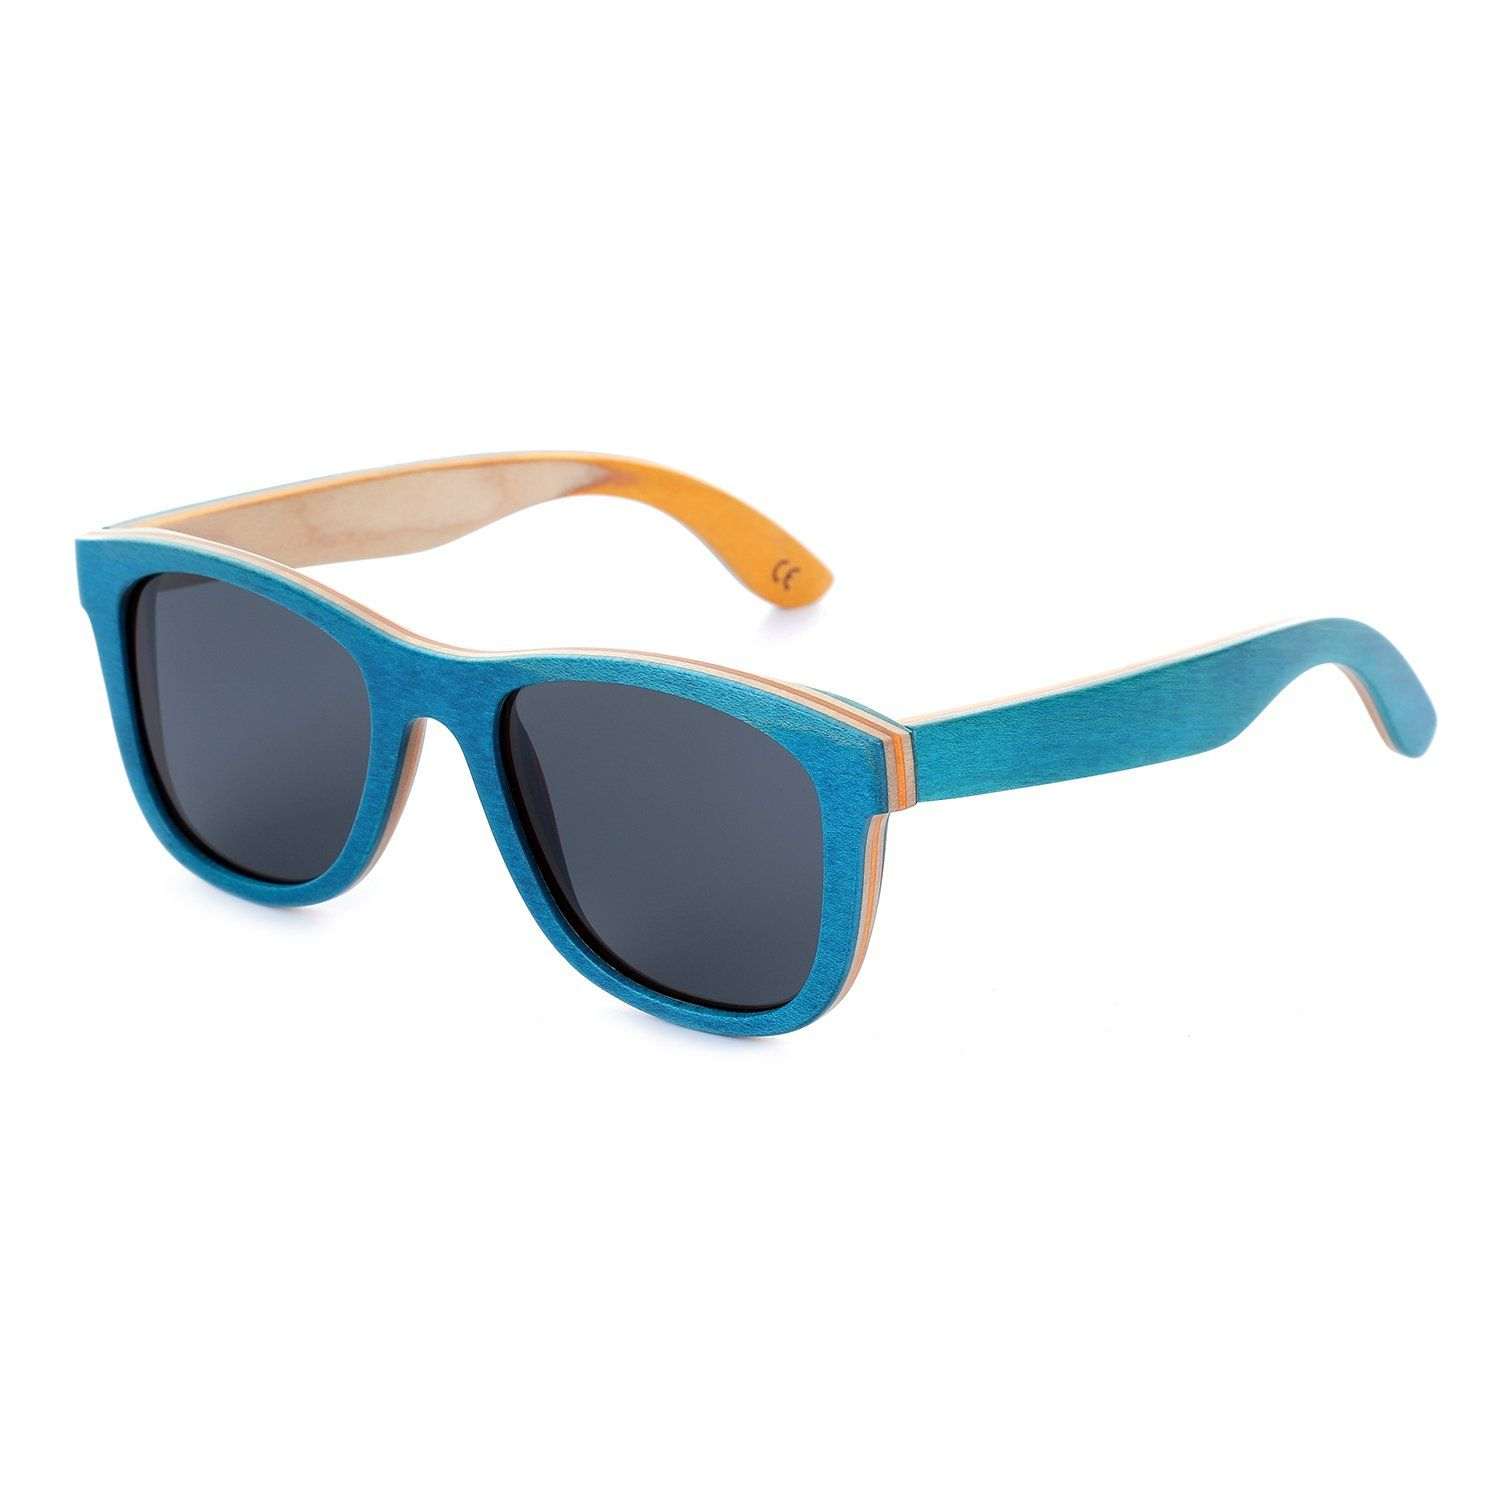 32e65d9bda5d Mini Tree Women Skateboard Wood Sunglasses Polarized Wayfarer Men Sun Shades  with Bamboo Case Blue Gray -- Learn more by checking out the picture link.